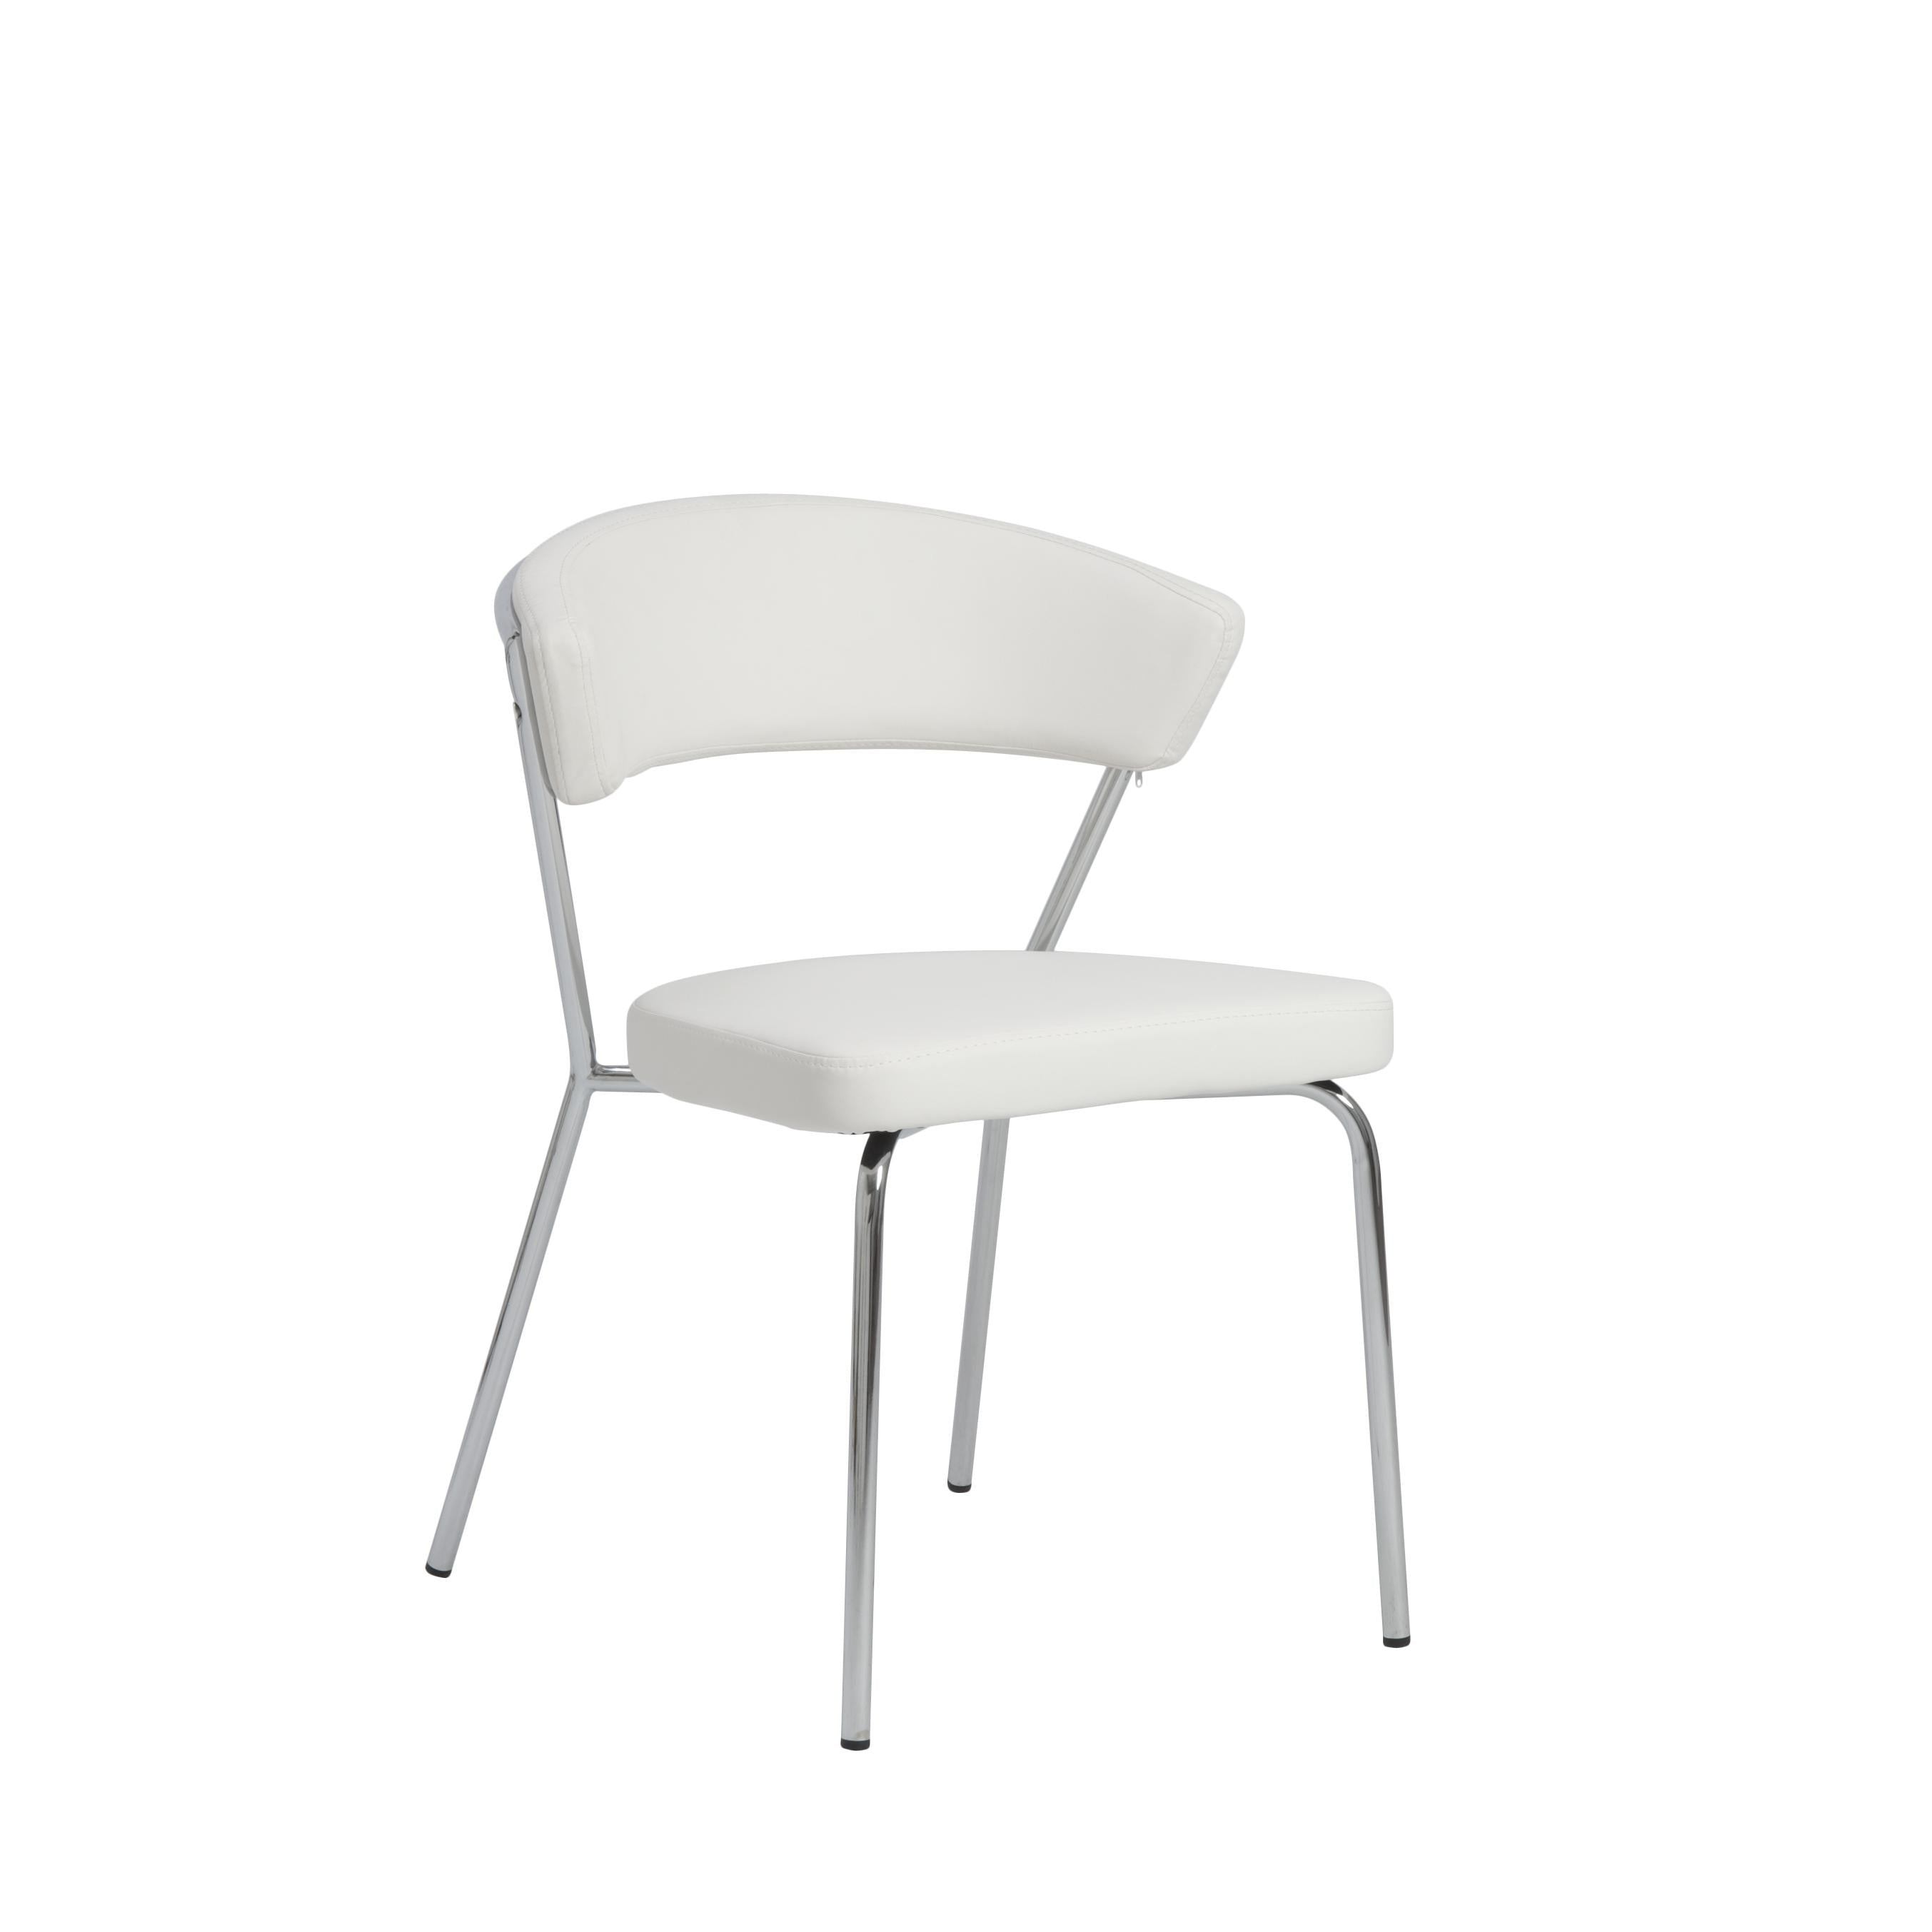 Curved-Back White Leatherette Guest or Conference Chair (Set of 4)